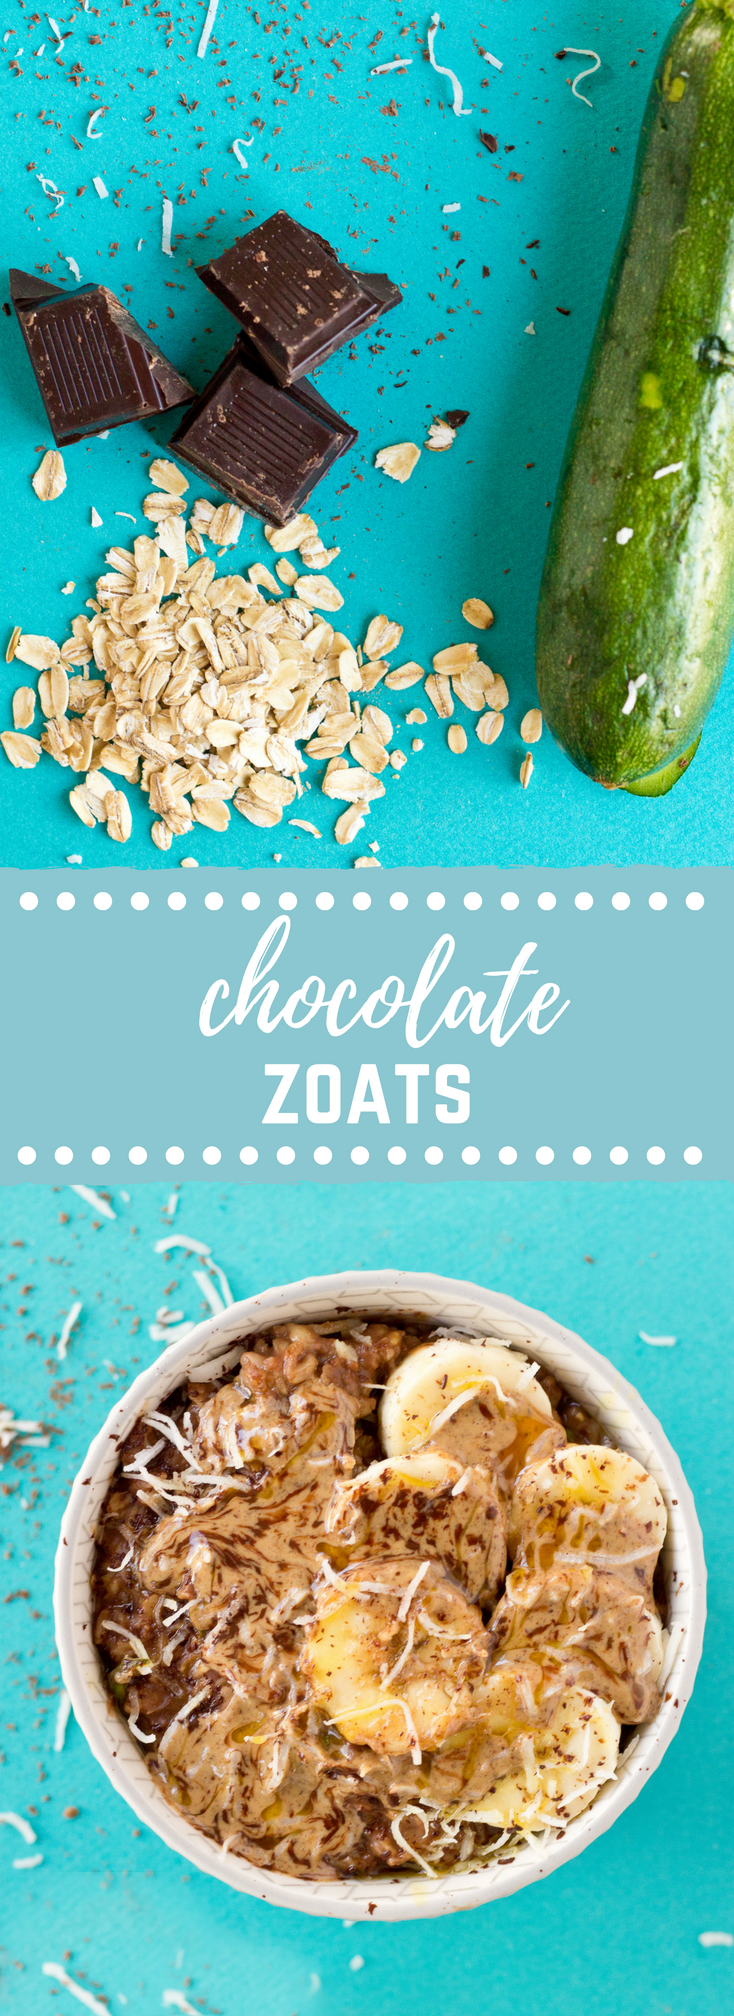 Chocolate Zoats aka Zucchini Oatmeal | Chocolate Oatmeal Recipe